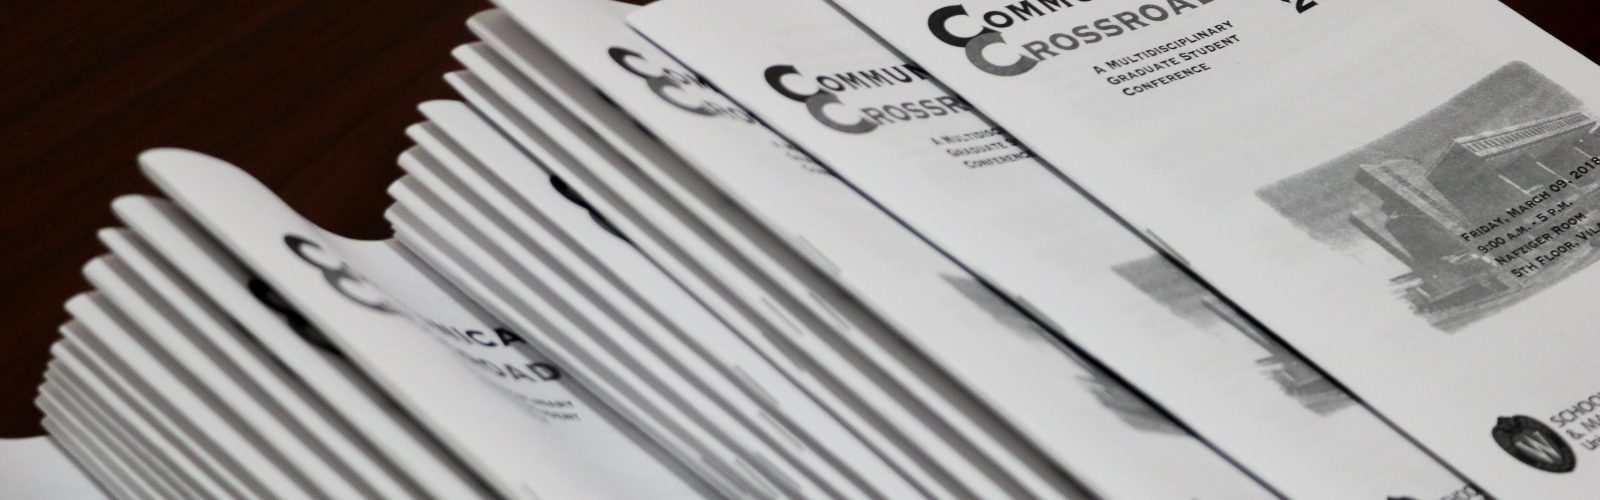 A stack of programs from the Communications Crossroads conference 2018.